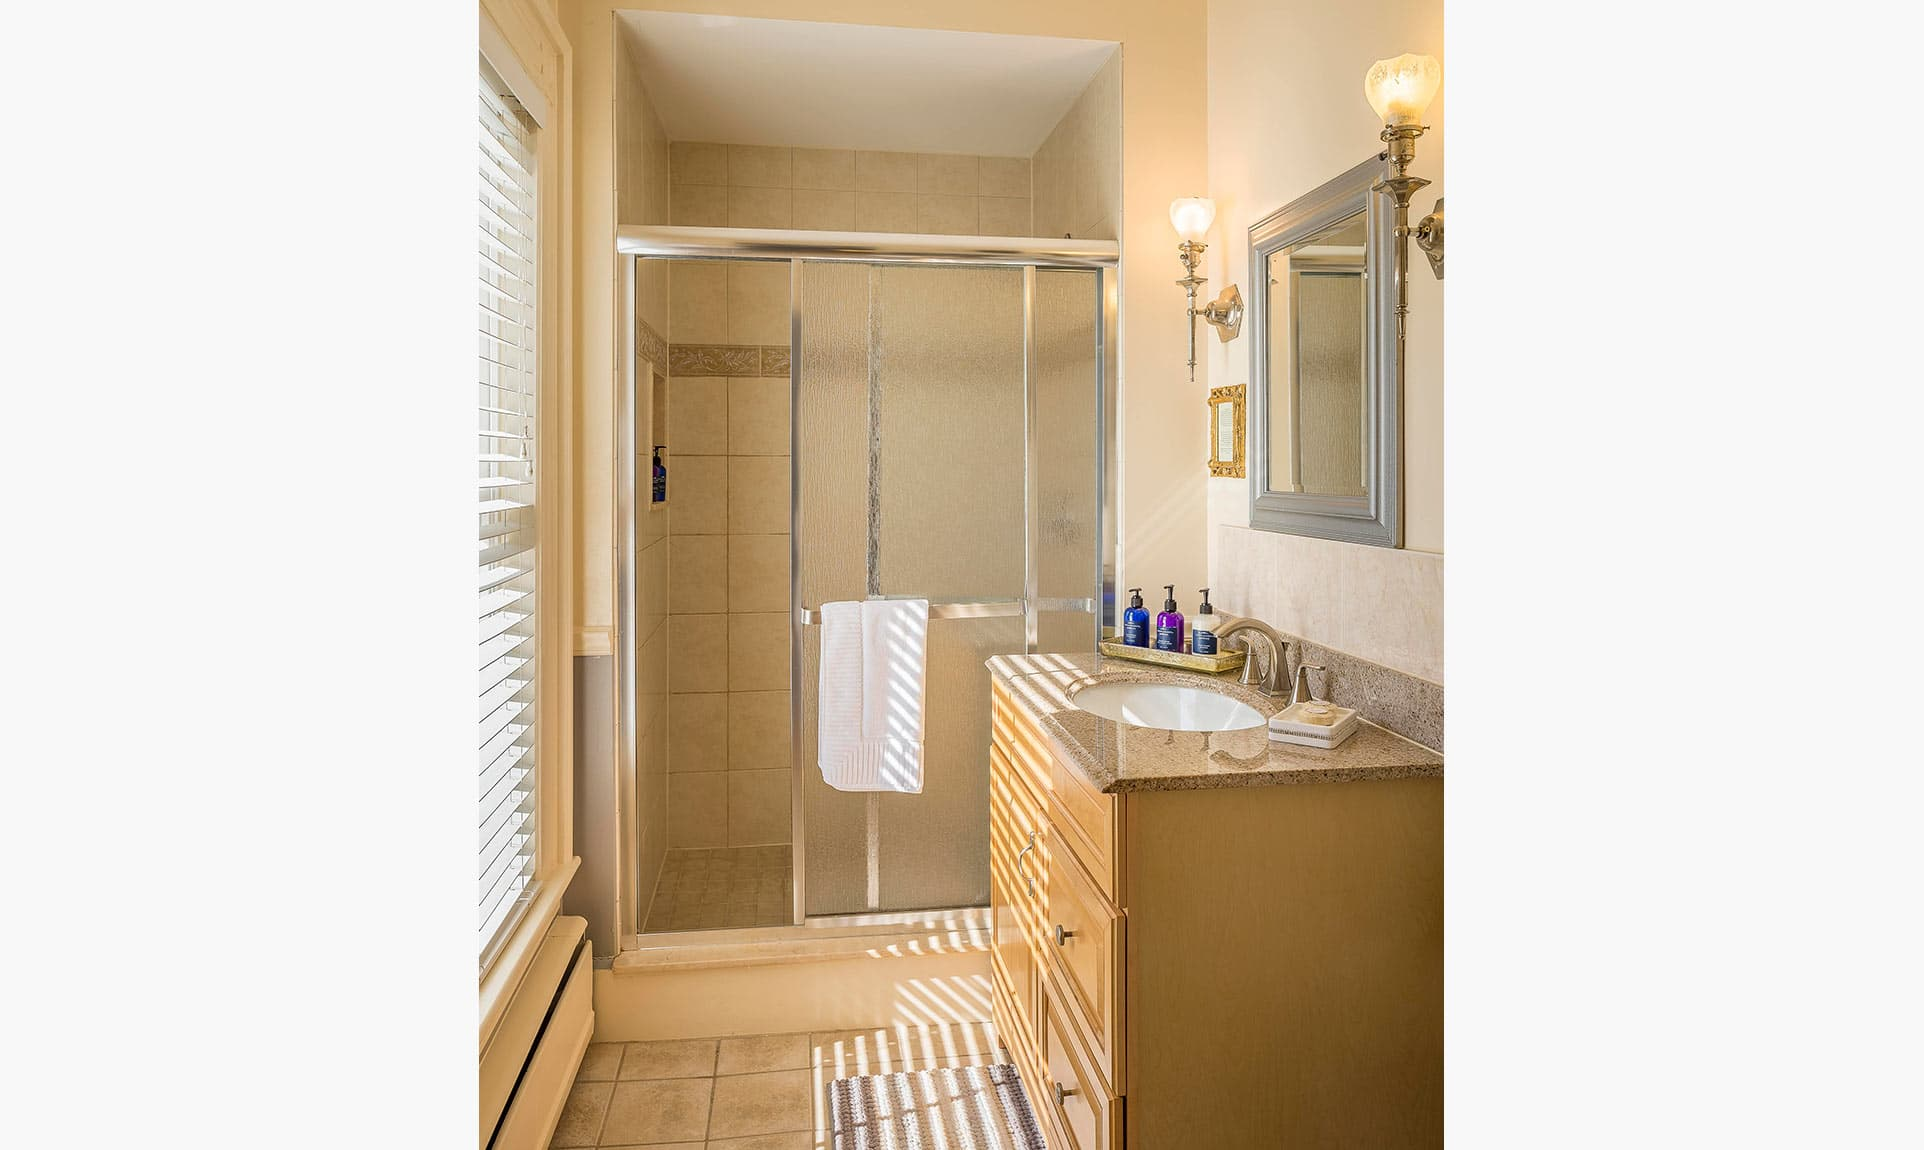 Walk-in Shower at our Midcoast Maine boutique hotel